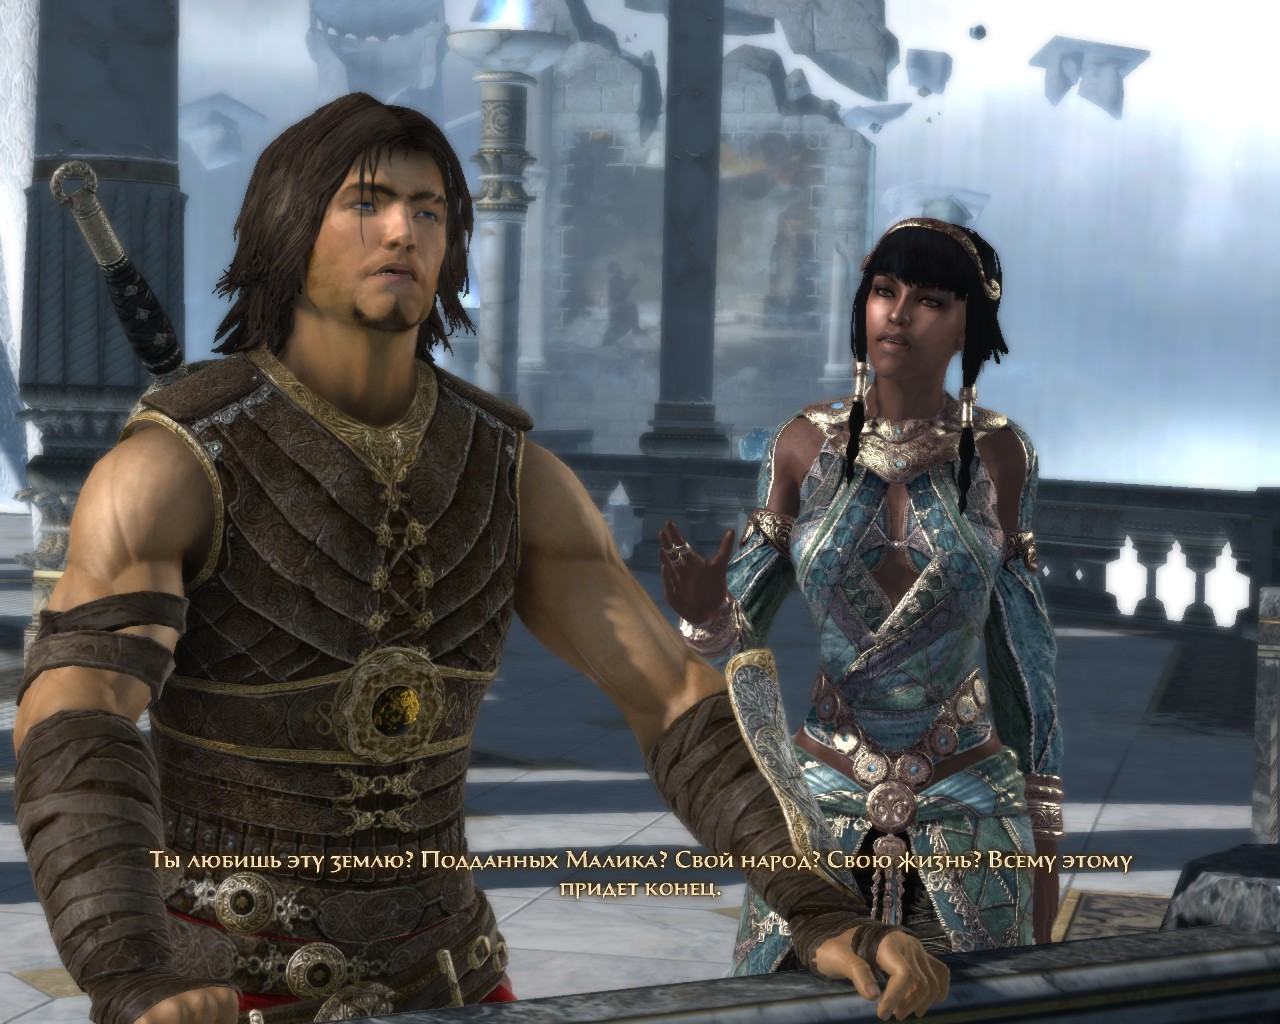 Prince of Persia 2014-06-03 22-18-56-70.jpg - Prince of Persia: The Forgotten Sands